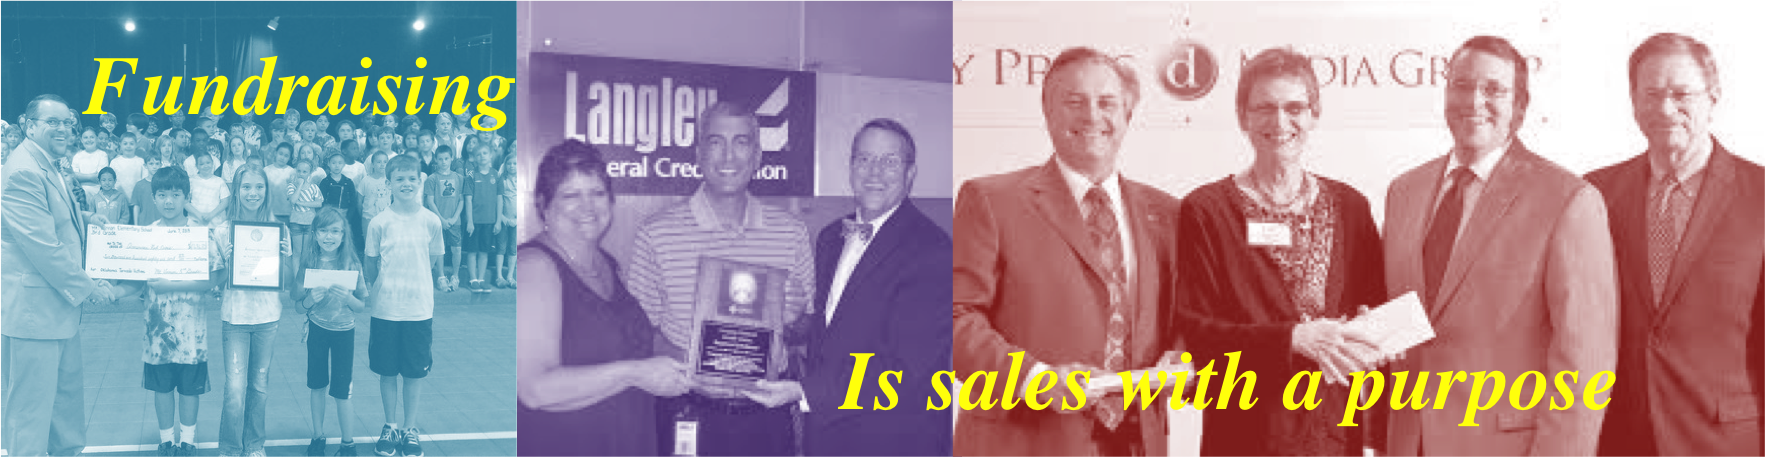 Sales with a purpose